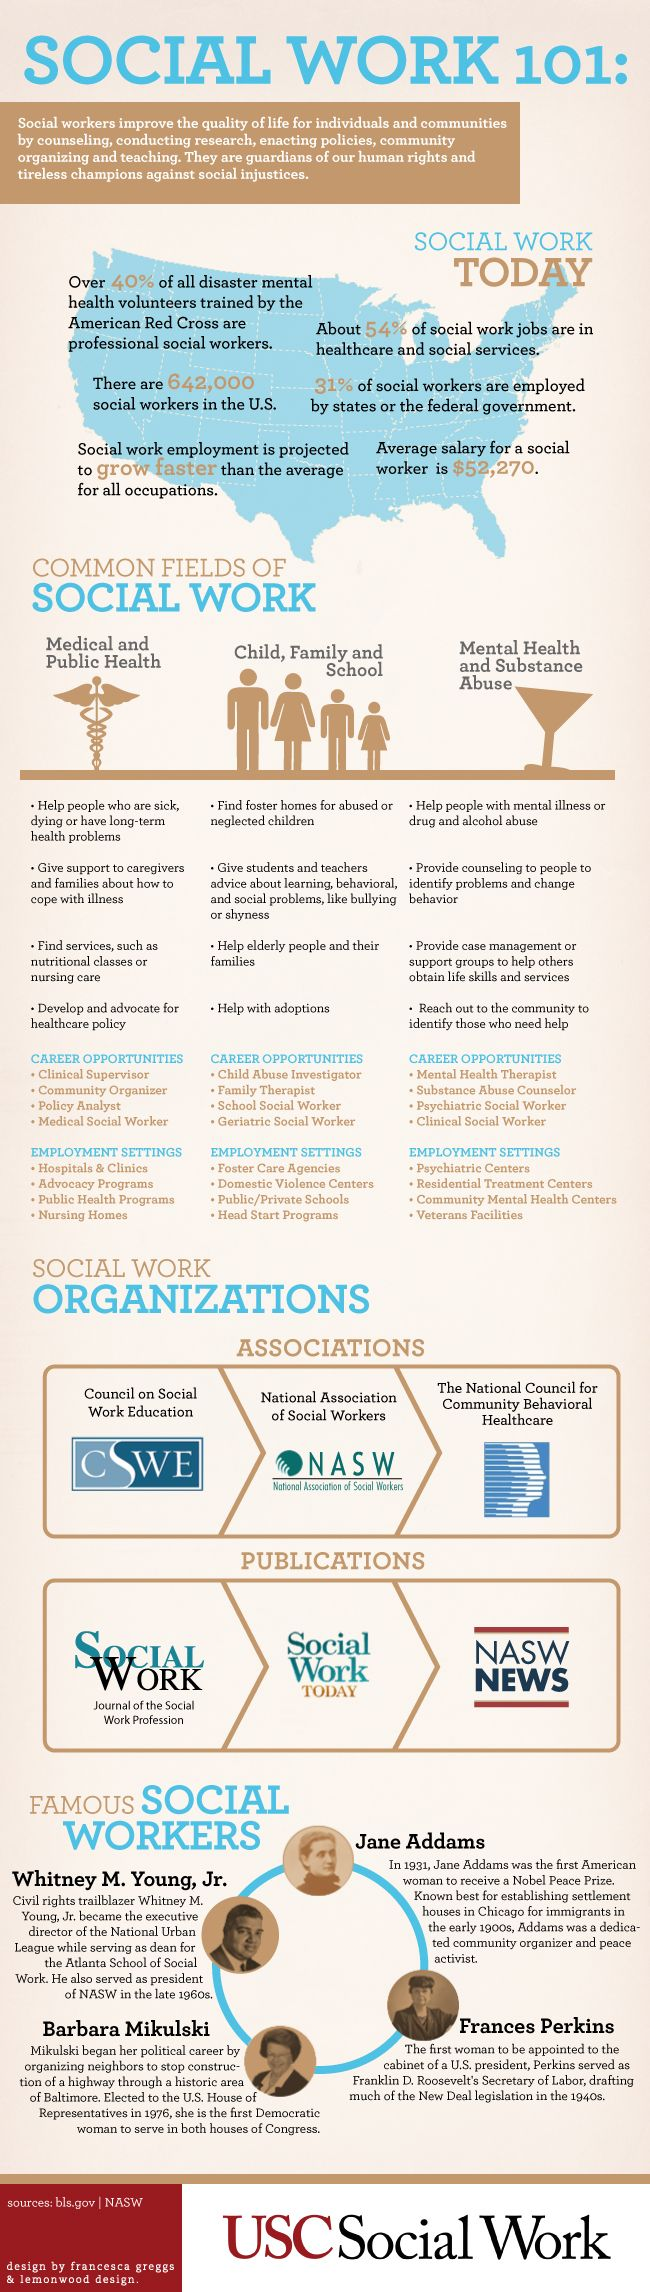 Social Work Career infographic